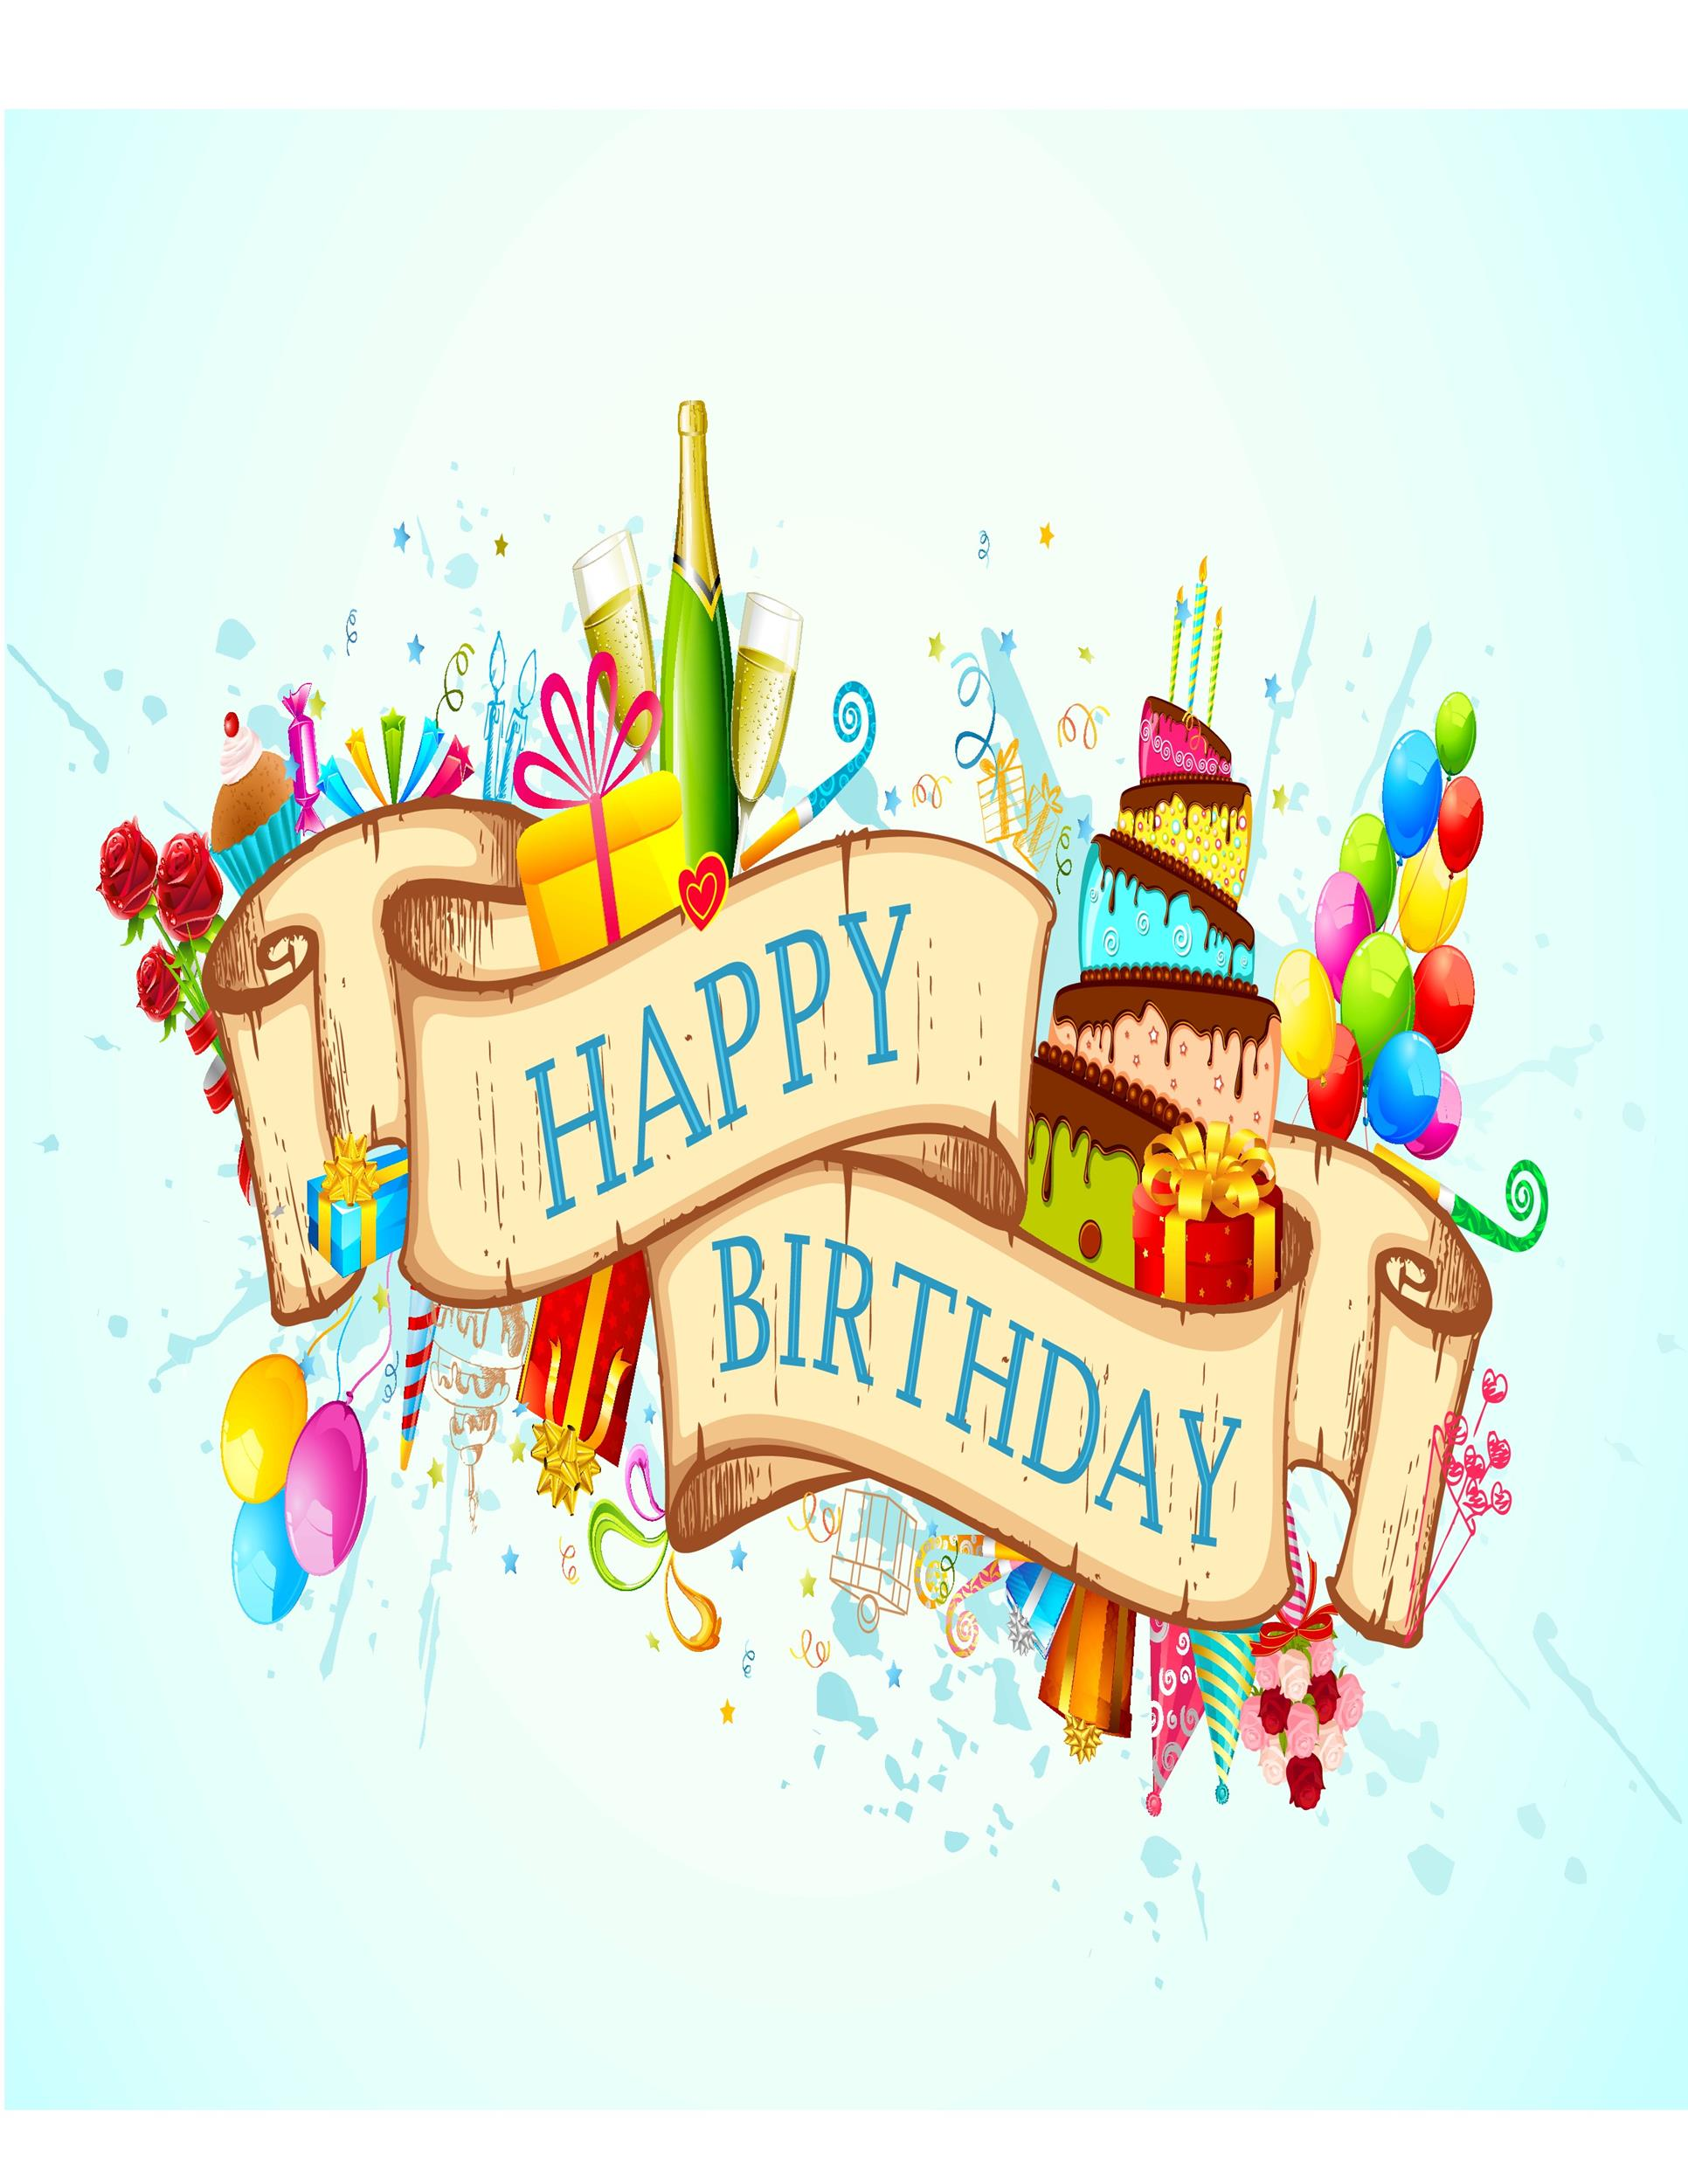 Birthday Cards Images Free Download : birthday, cards, images, download, Birthday, Templates, TemplateLab